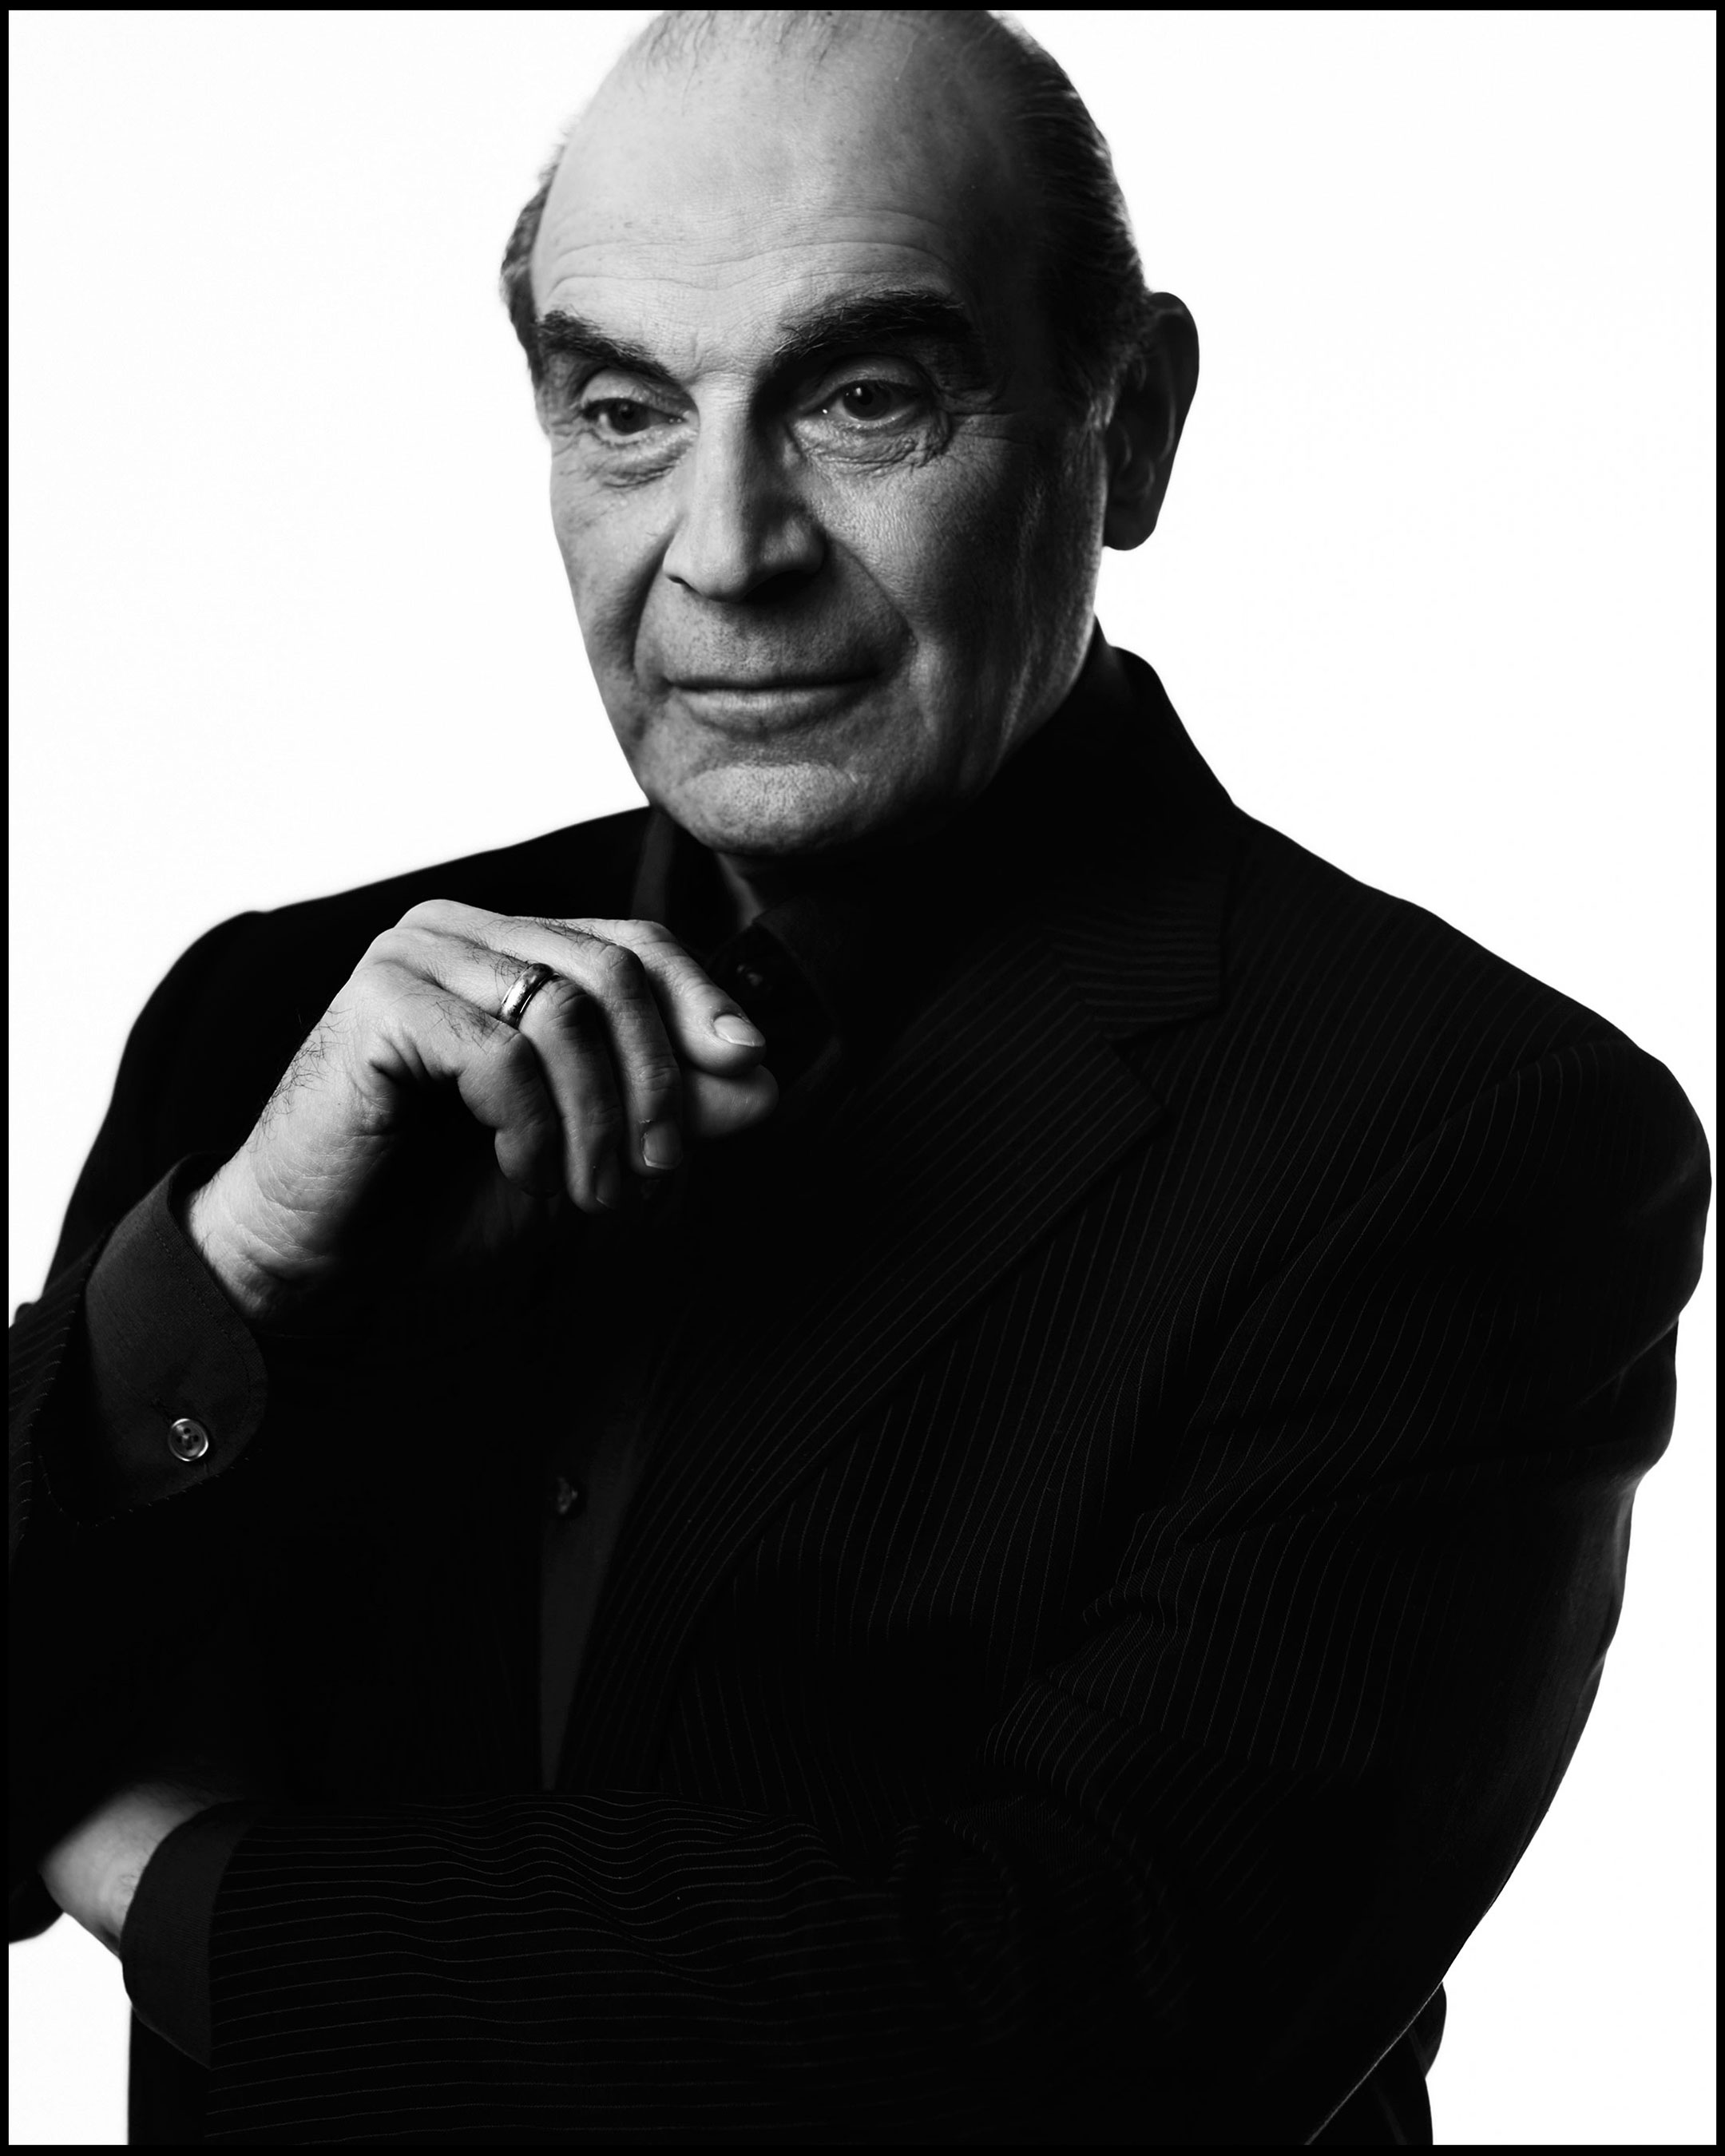 David-Suchet_crop_bw_R-0302.flip